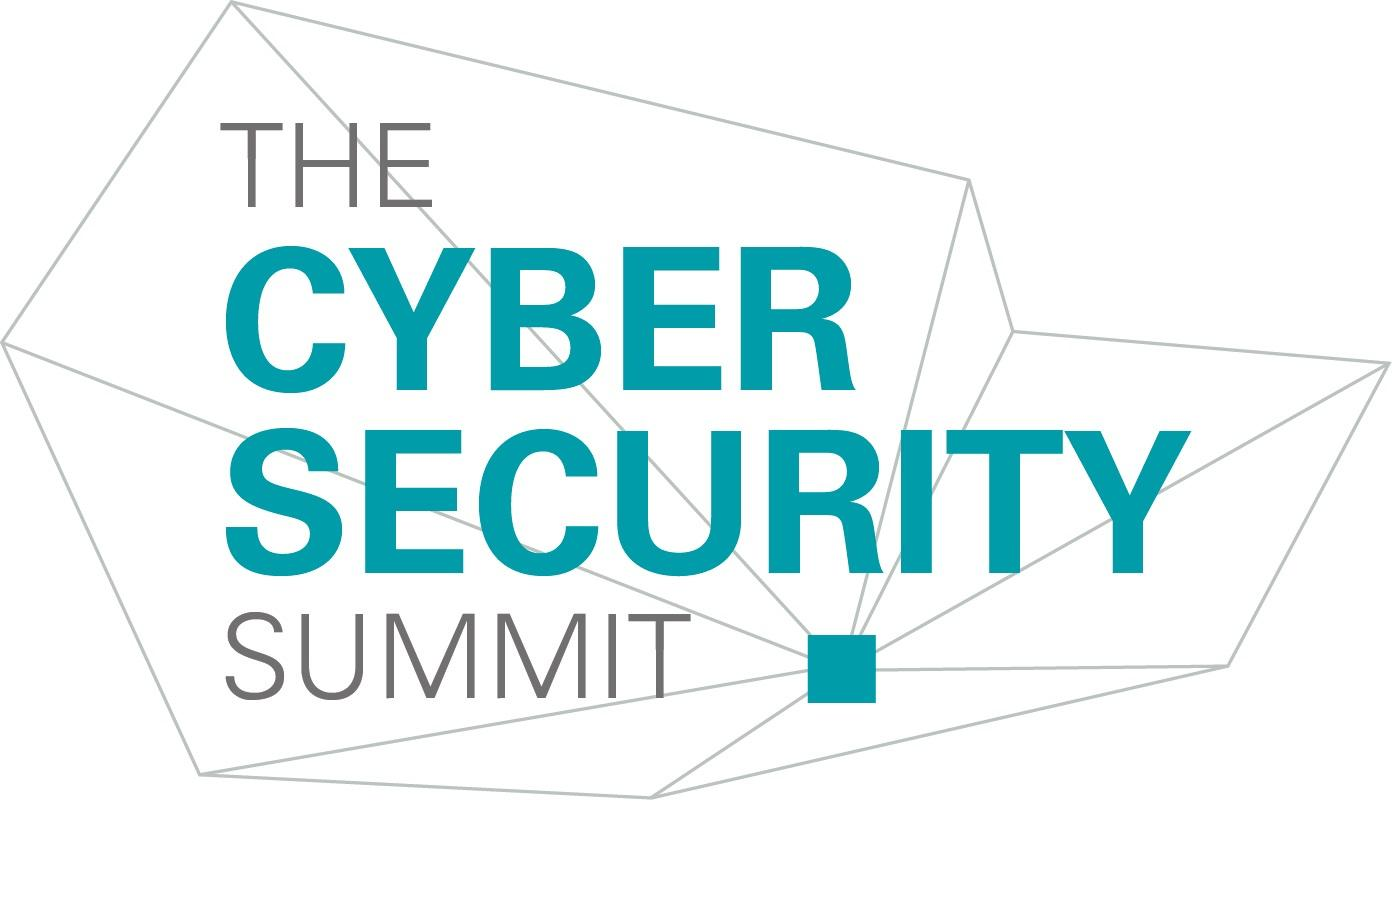 A picture of the The Cyber Security Summit Manchester logo